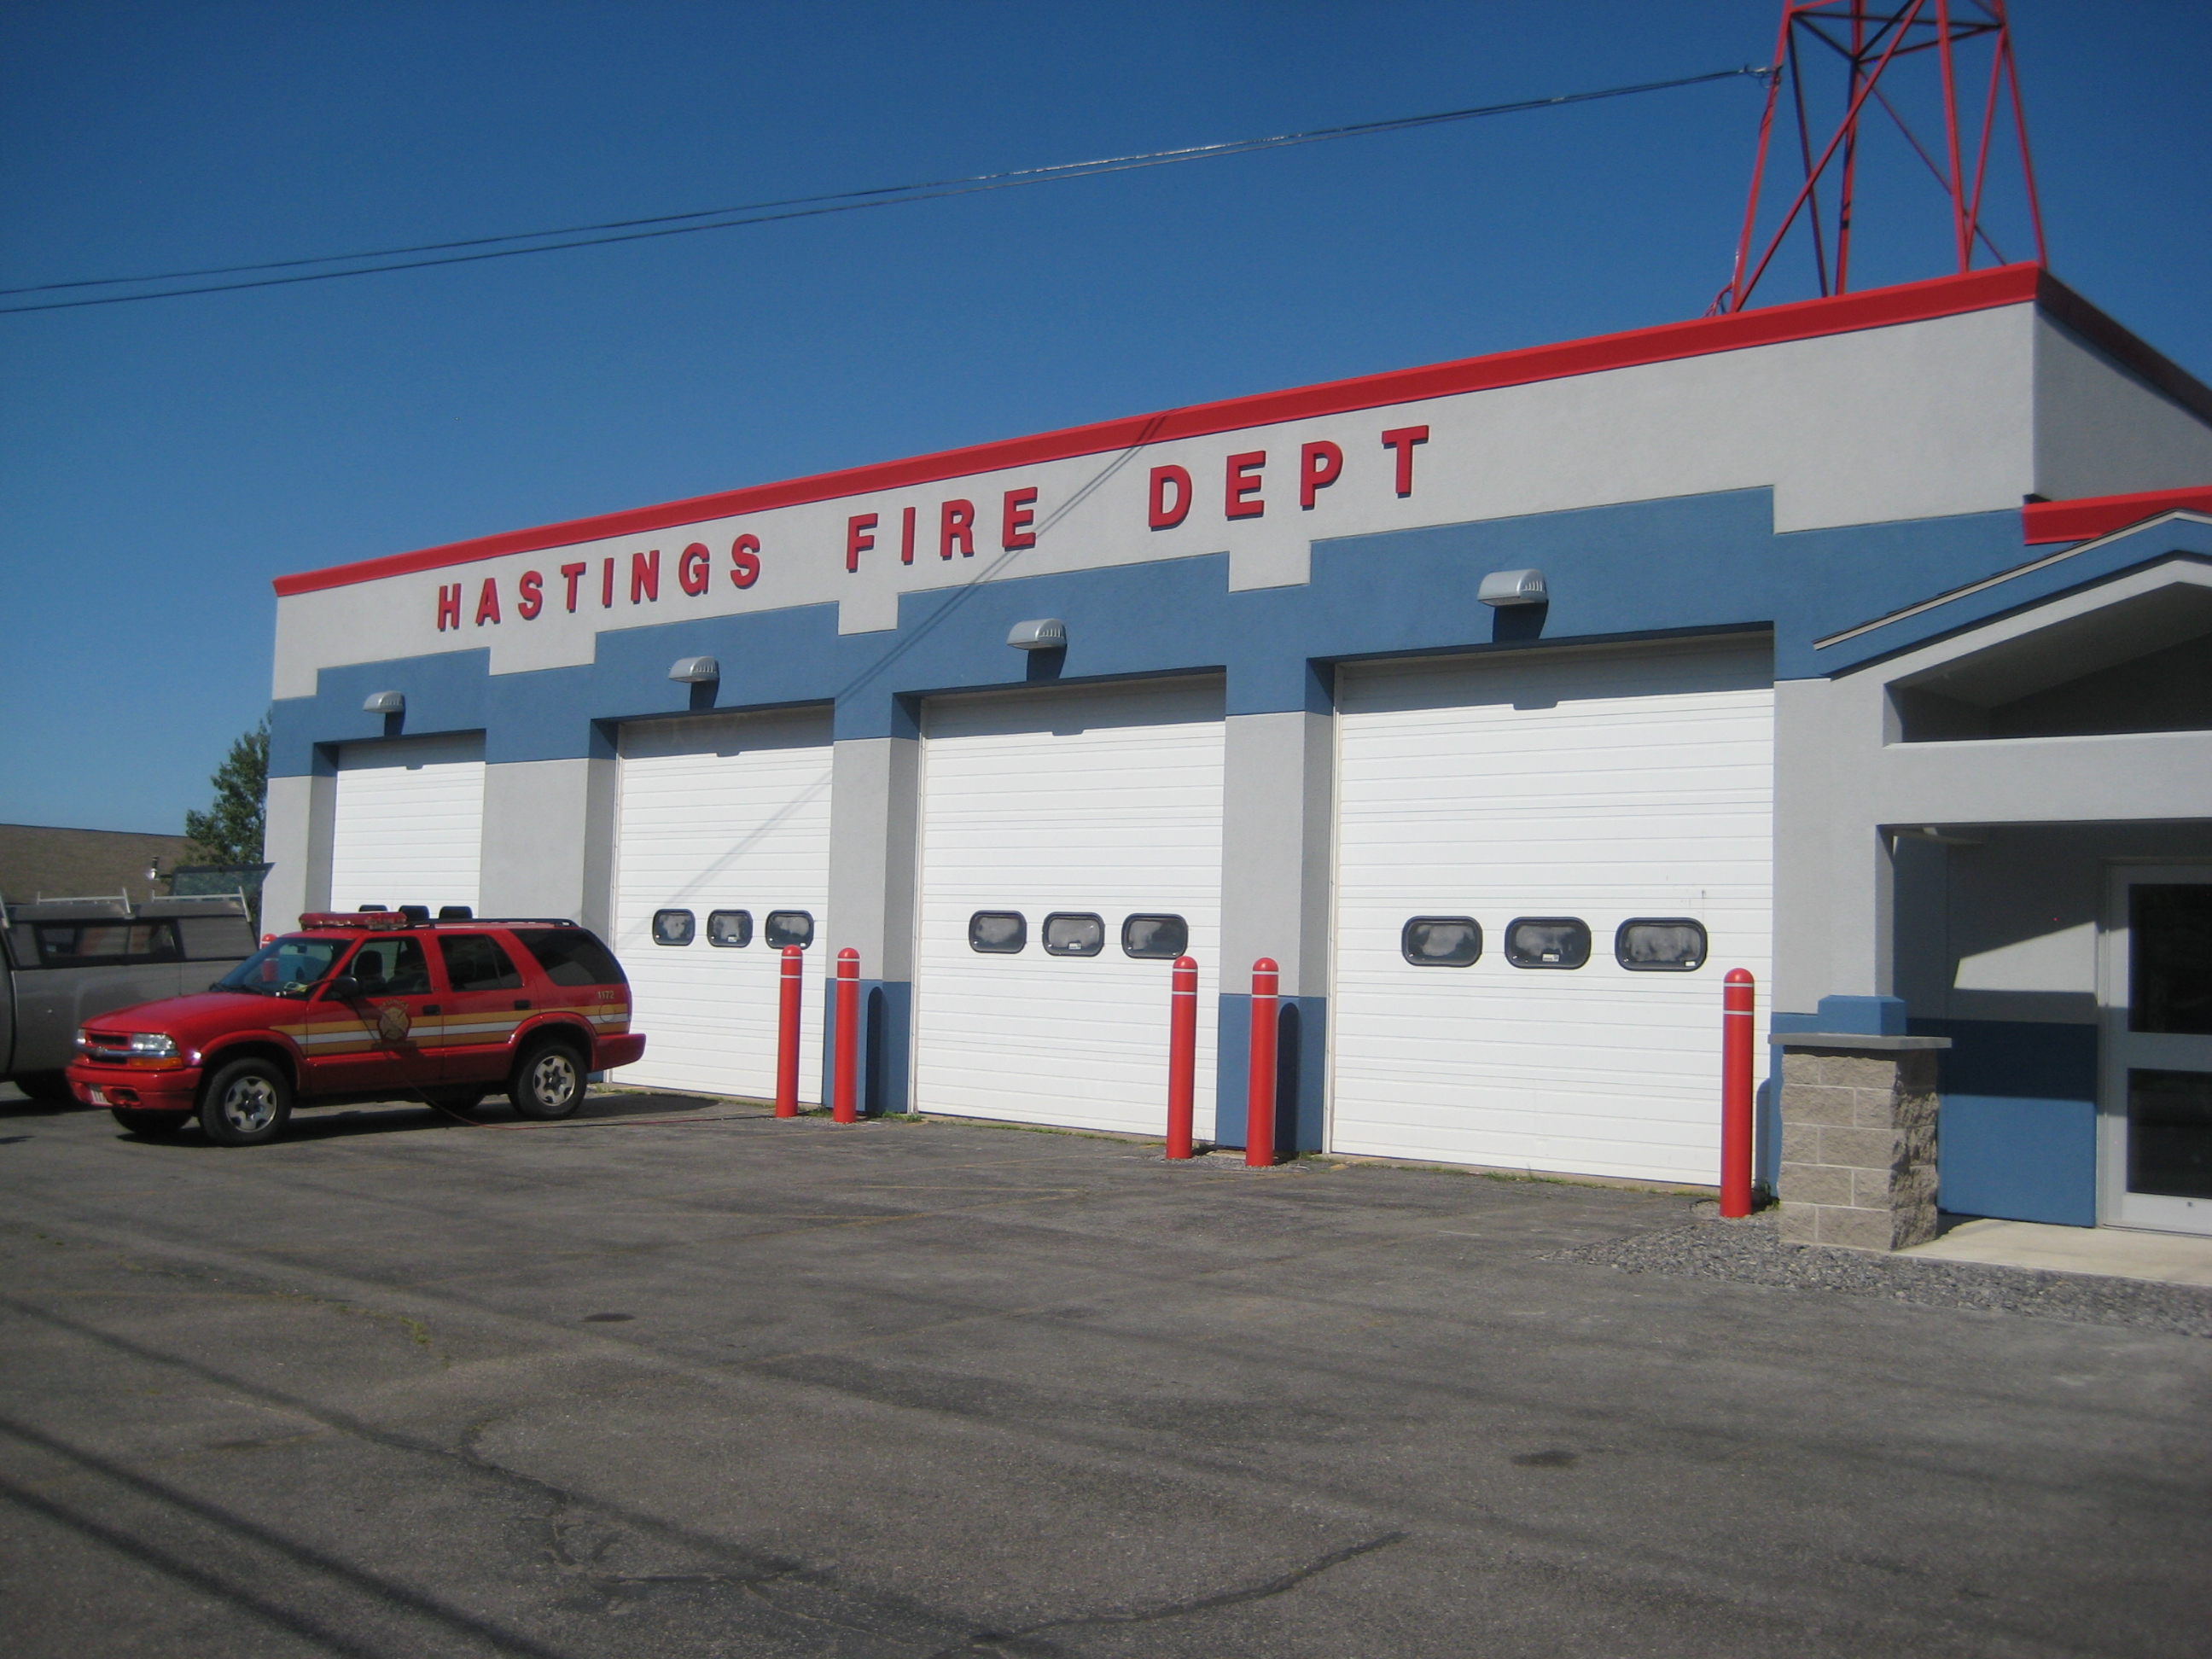 Hastings Fire Department